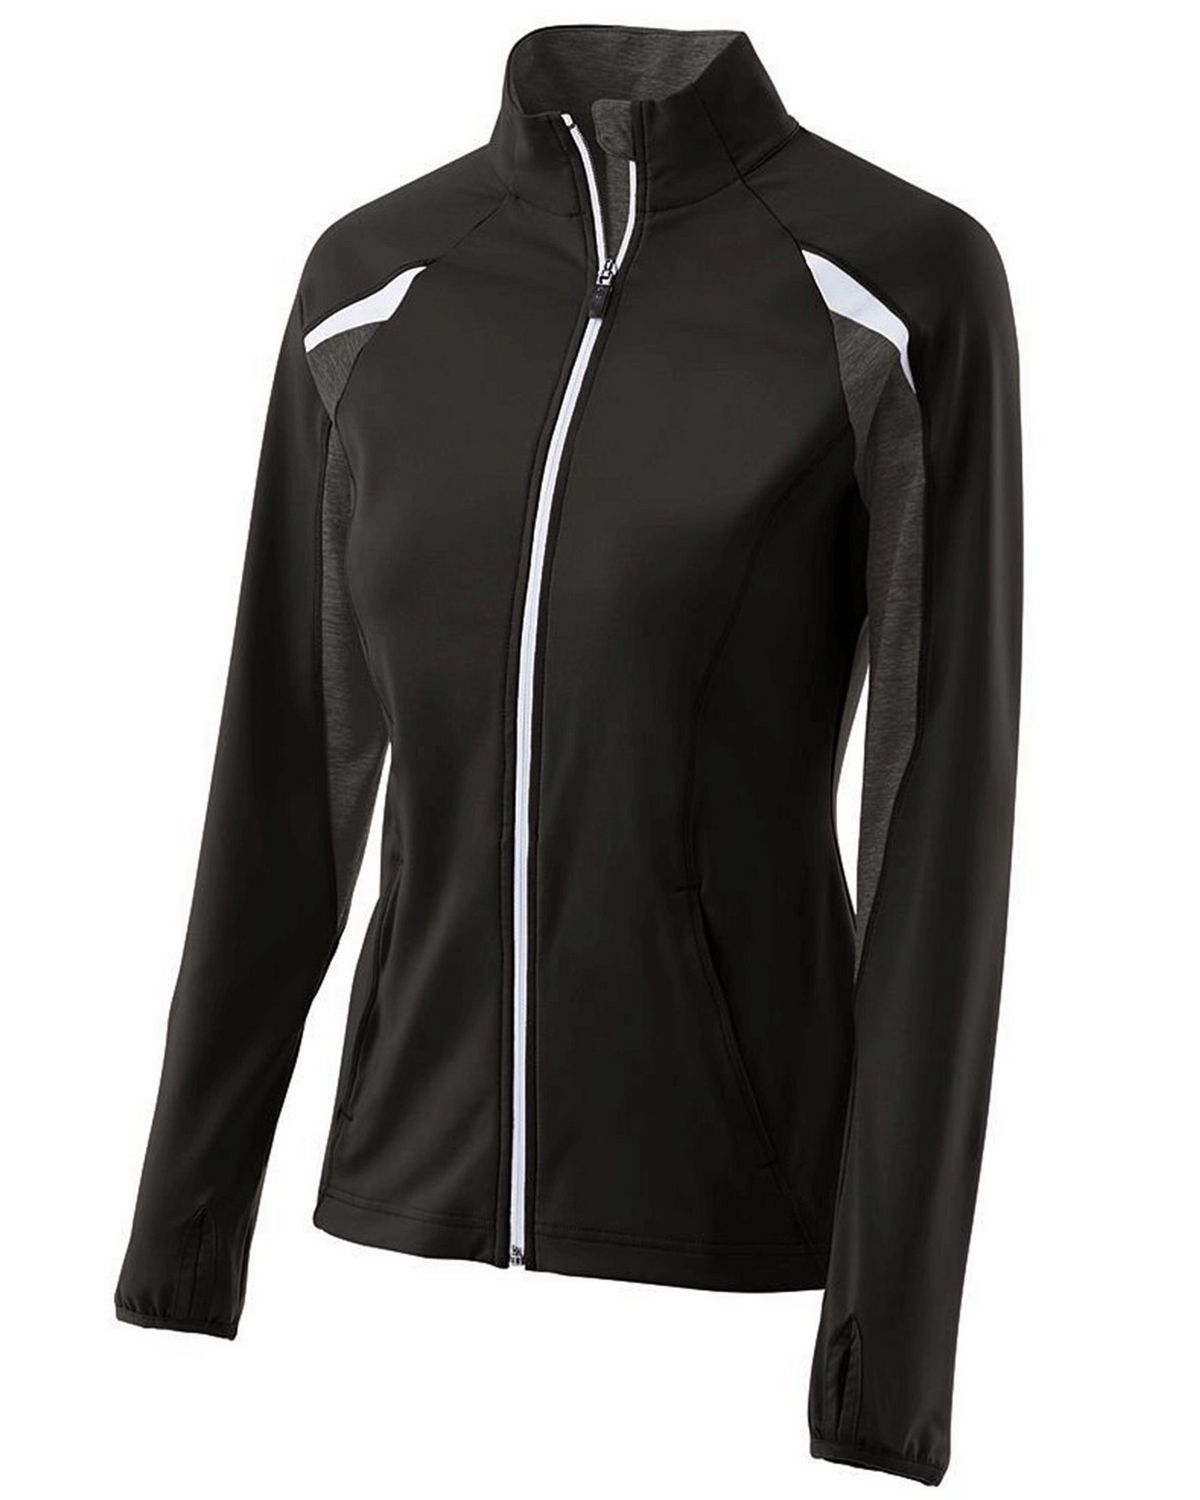 Holloway 229363 Women's Polyester Full Zip Tumble Jacket